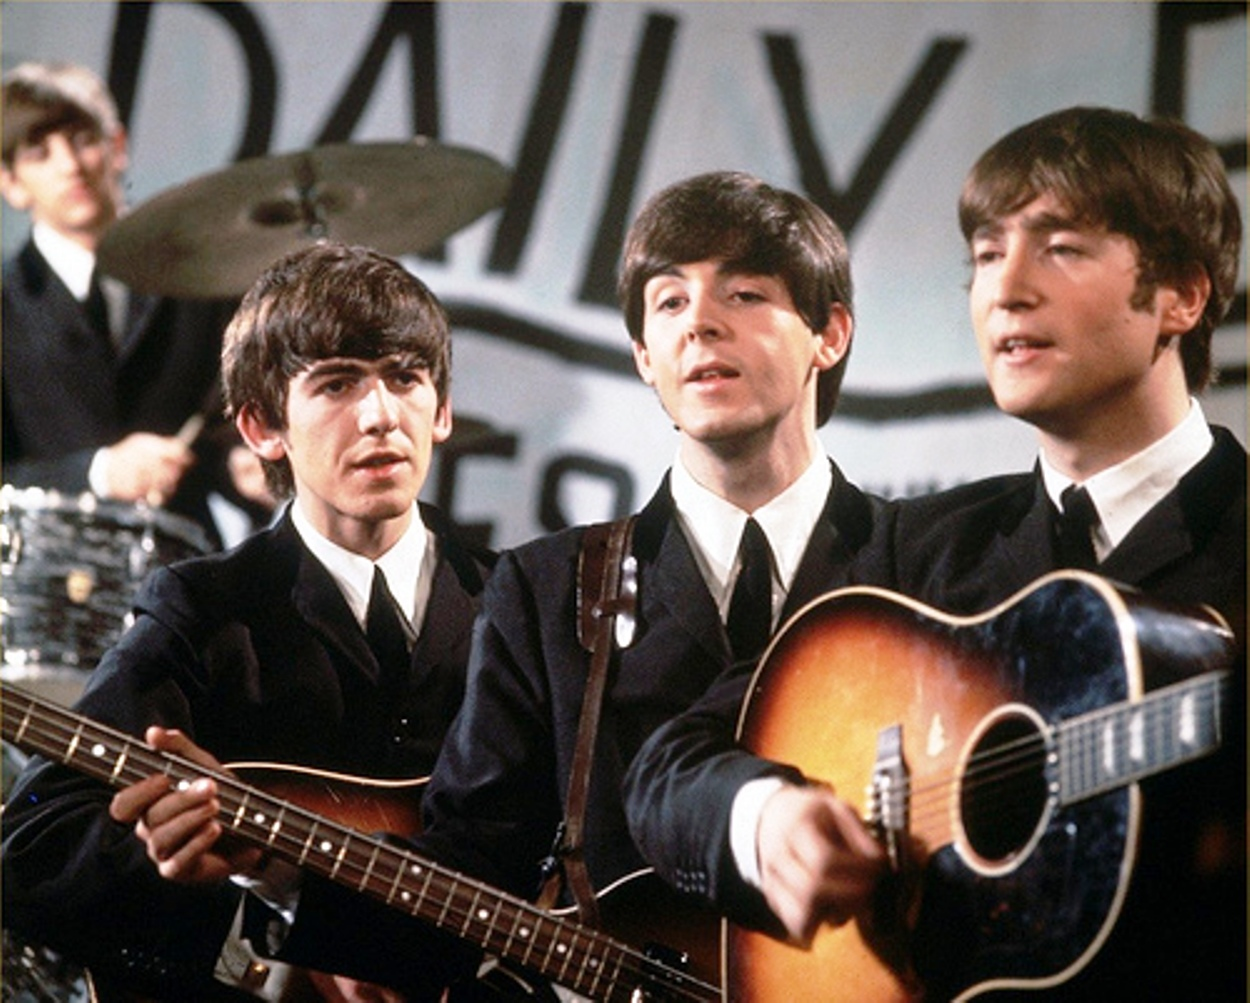 The Beatles thought love was all you needed to make love last